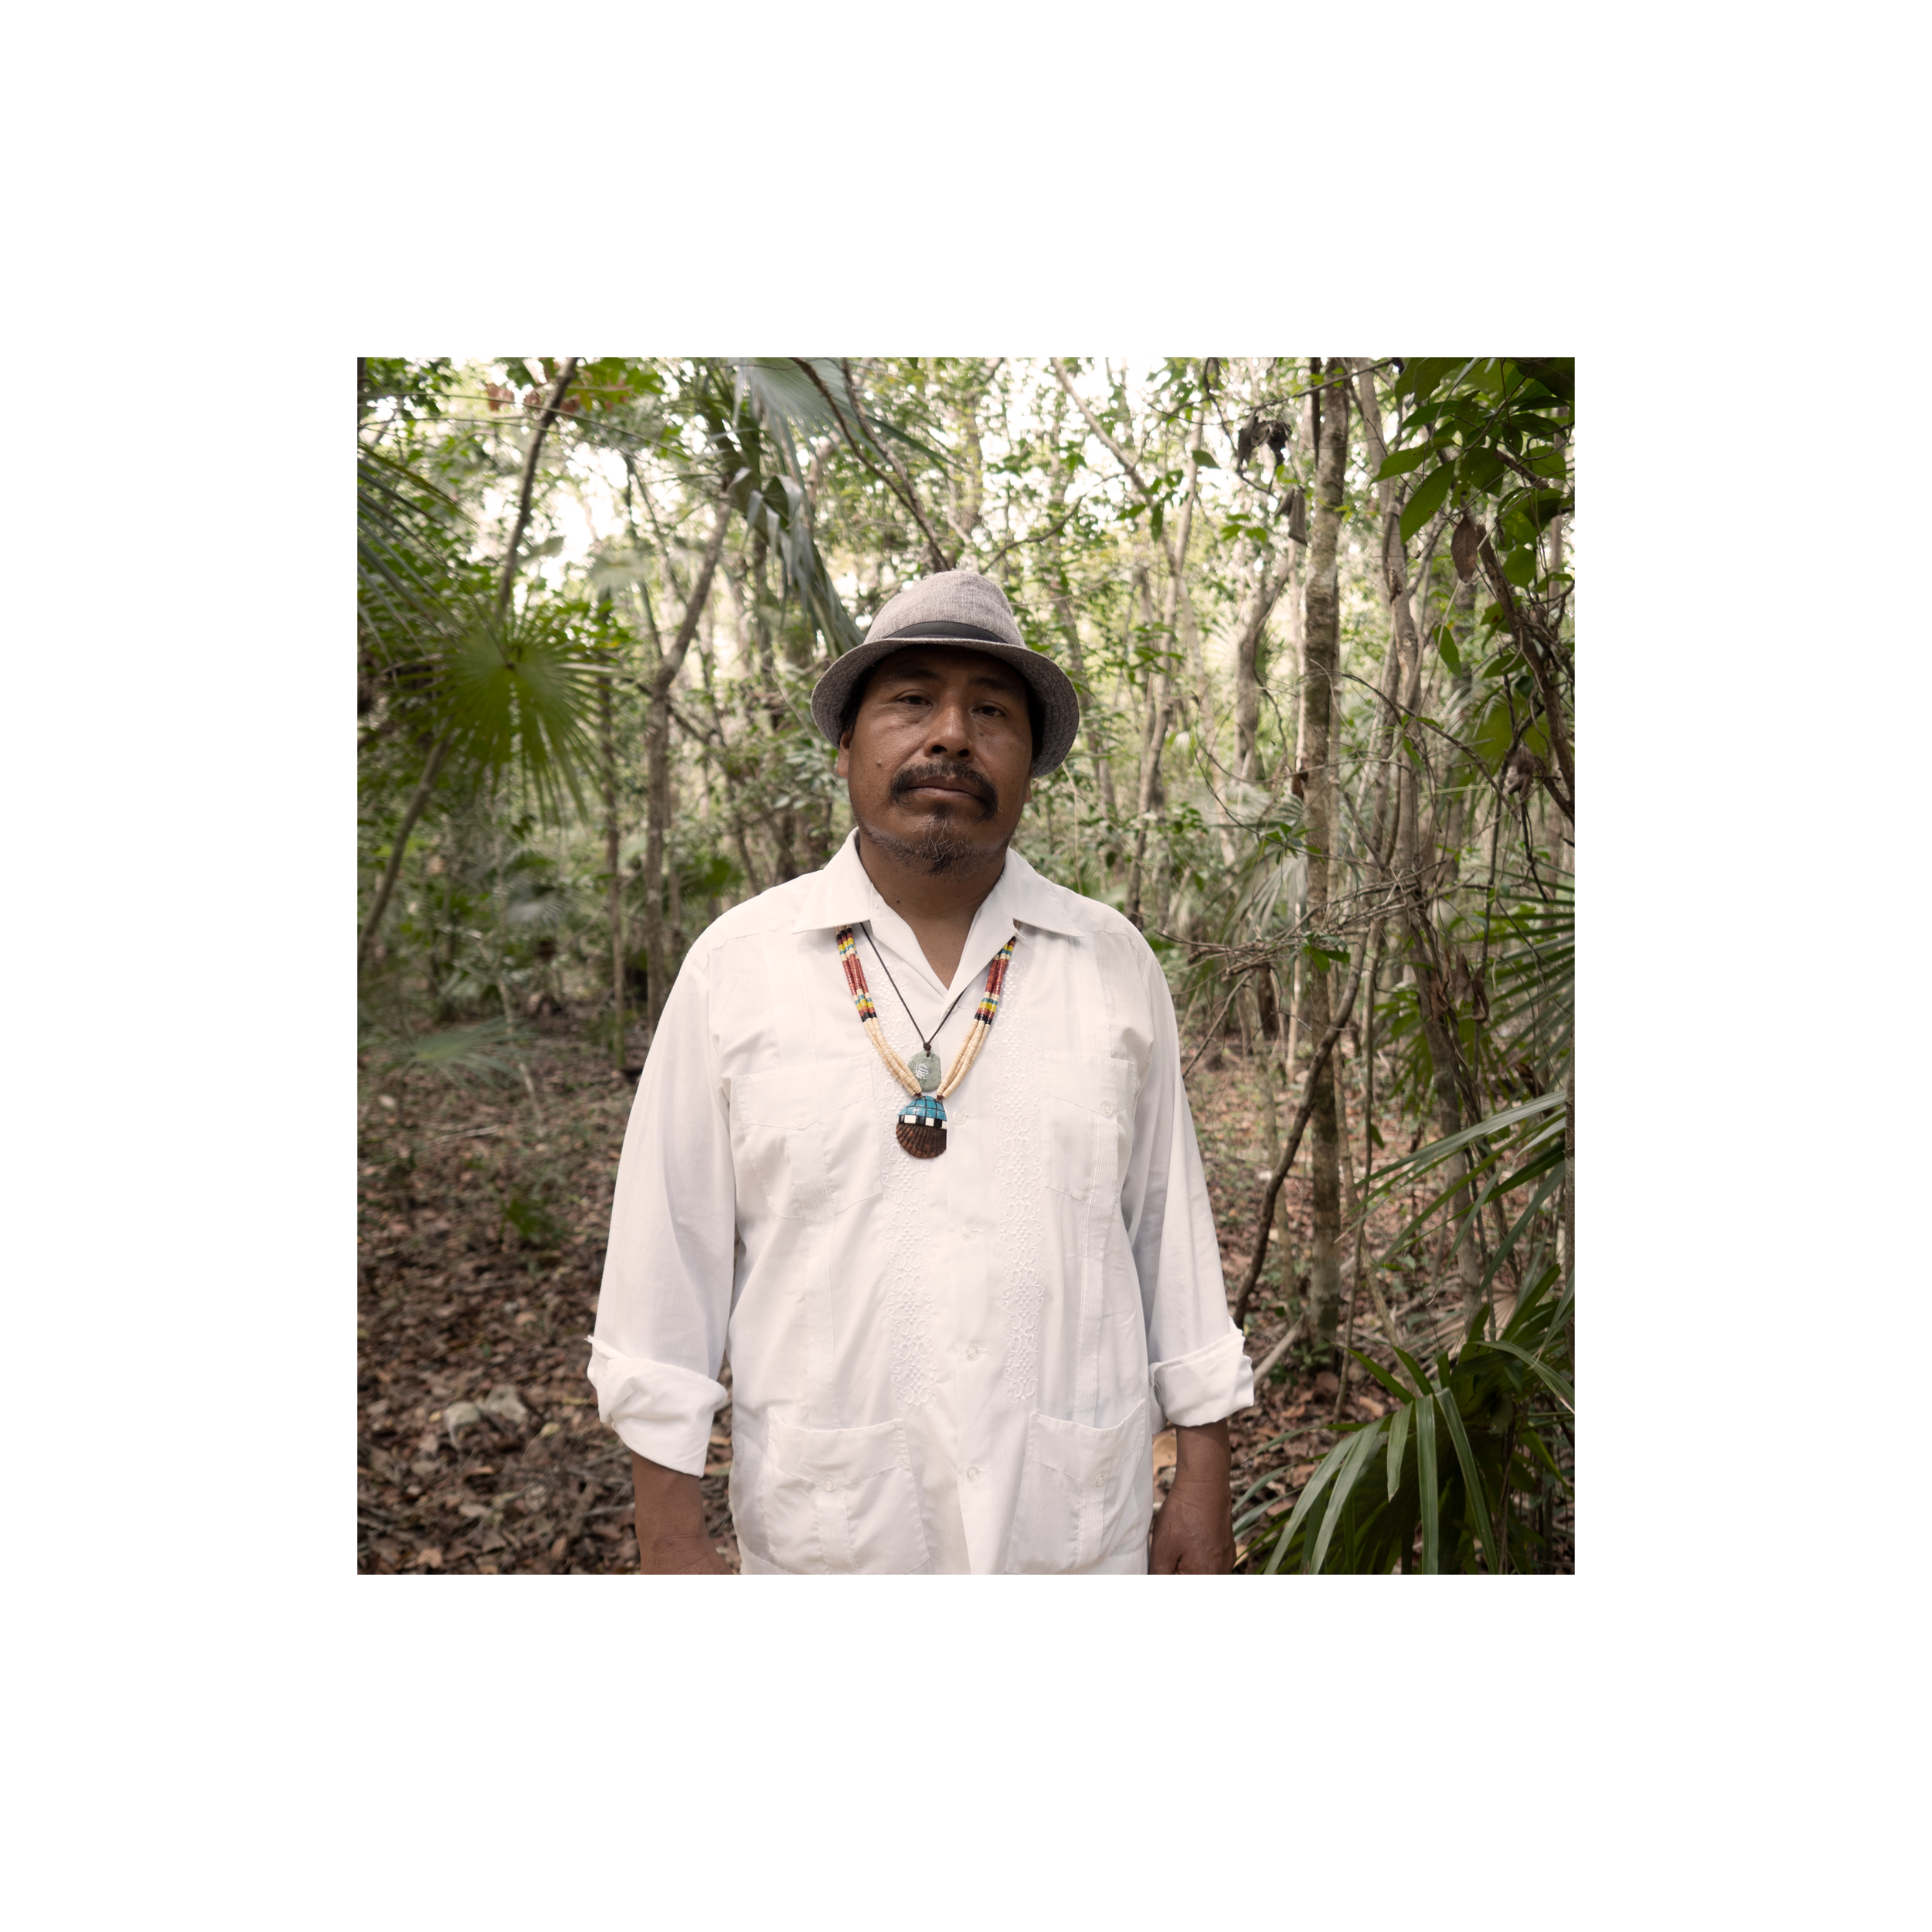 """Antun Kojtom - Antun was born on June 13, 1969 in Ch'ixaltontik an isolated community at 2 hour walking from Tenejapa a small village of Chiapas (south of Mexico) a community where they only speak their native tongue and dirt truck's open in 2002 and electricity in 2006.When he was 18 years old him and his older brother moved to Puerto Vallarta, Jalisco (Where he learn how to speak spanish) to work as unskilled labourer for a group of painters, called """"Juntos"""